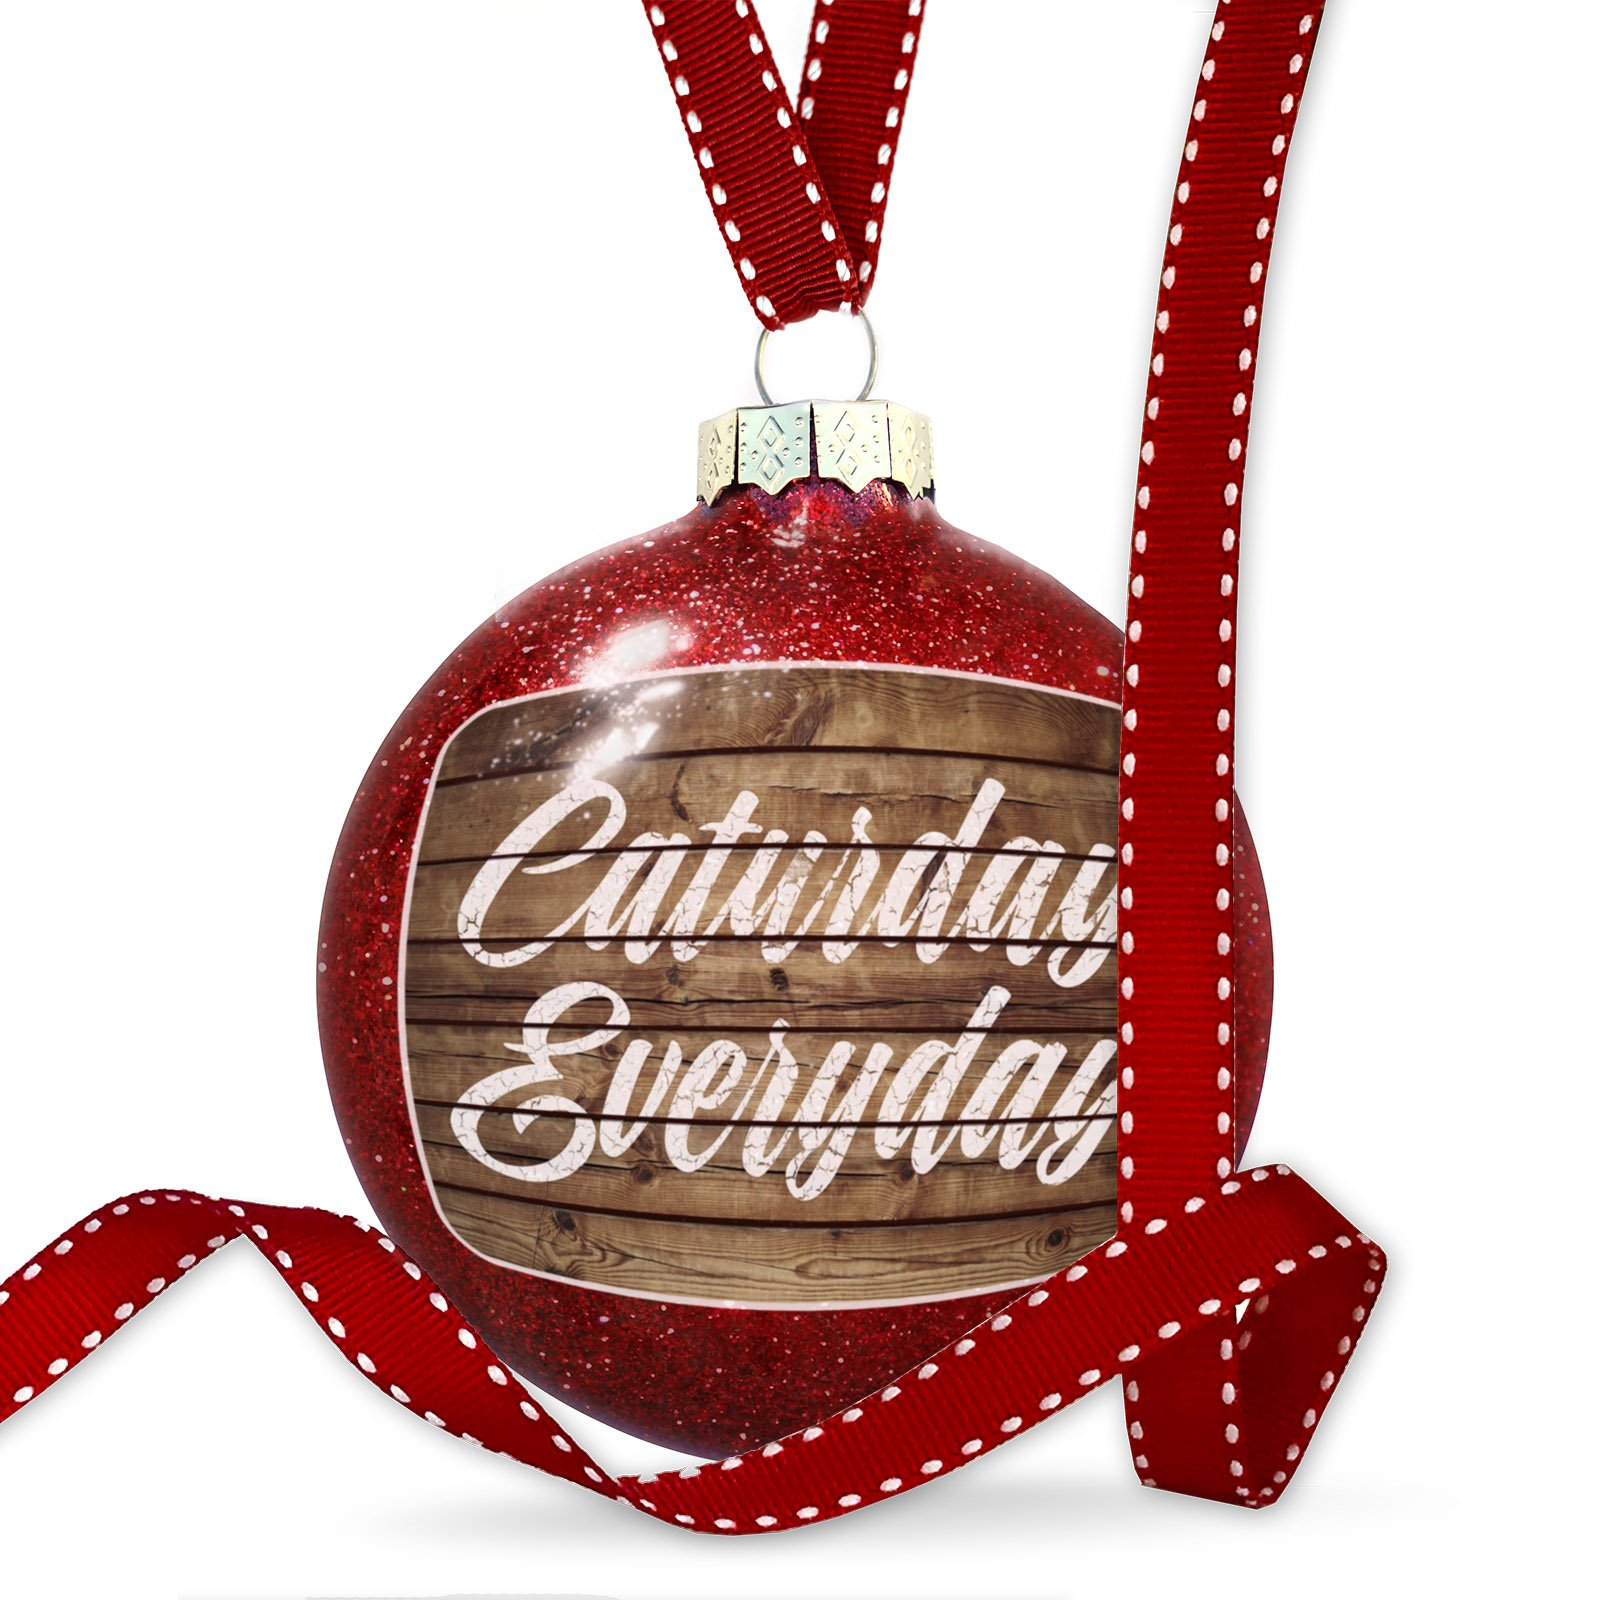 Christmas Decoration Painted Wood Caturday Everyday Ornament